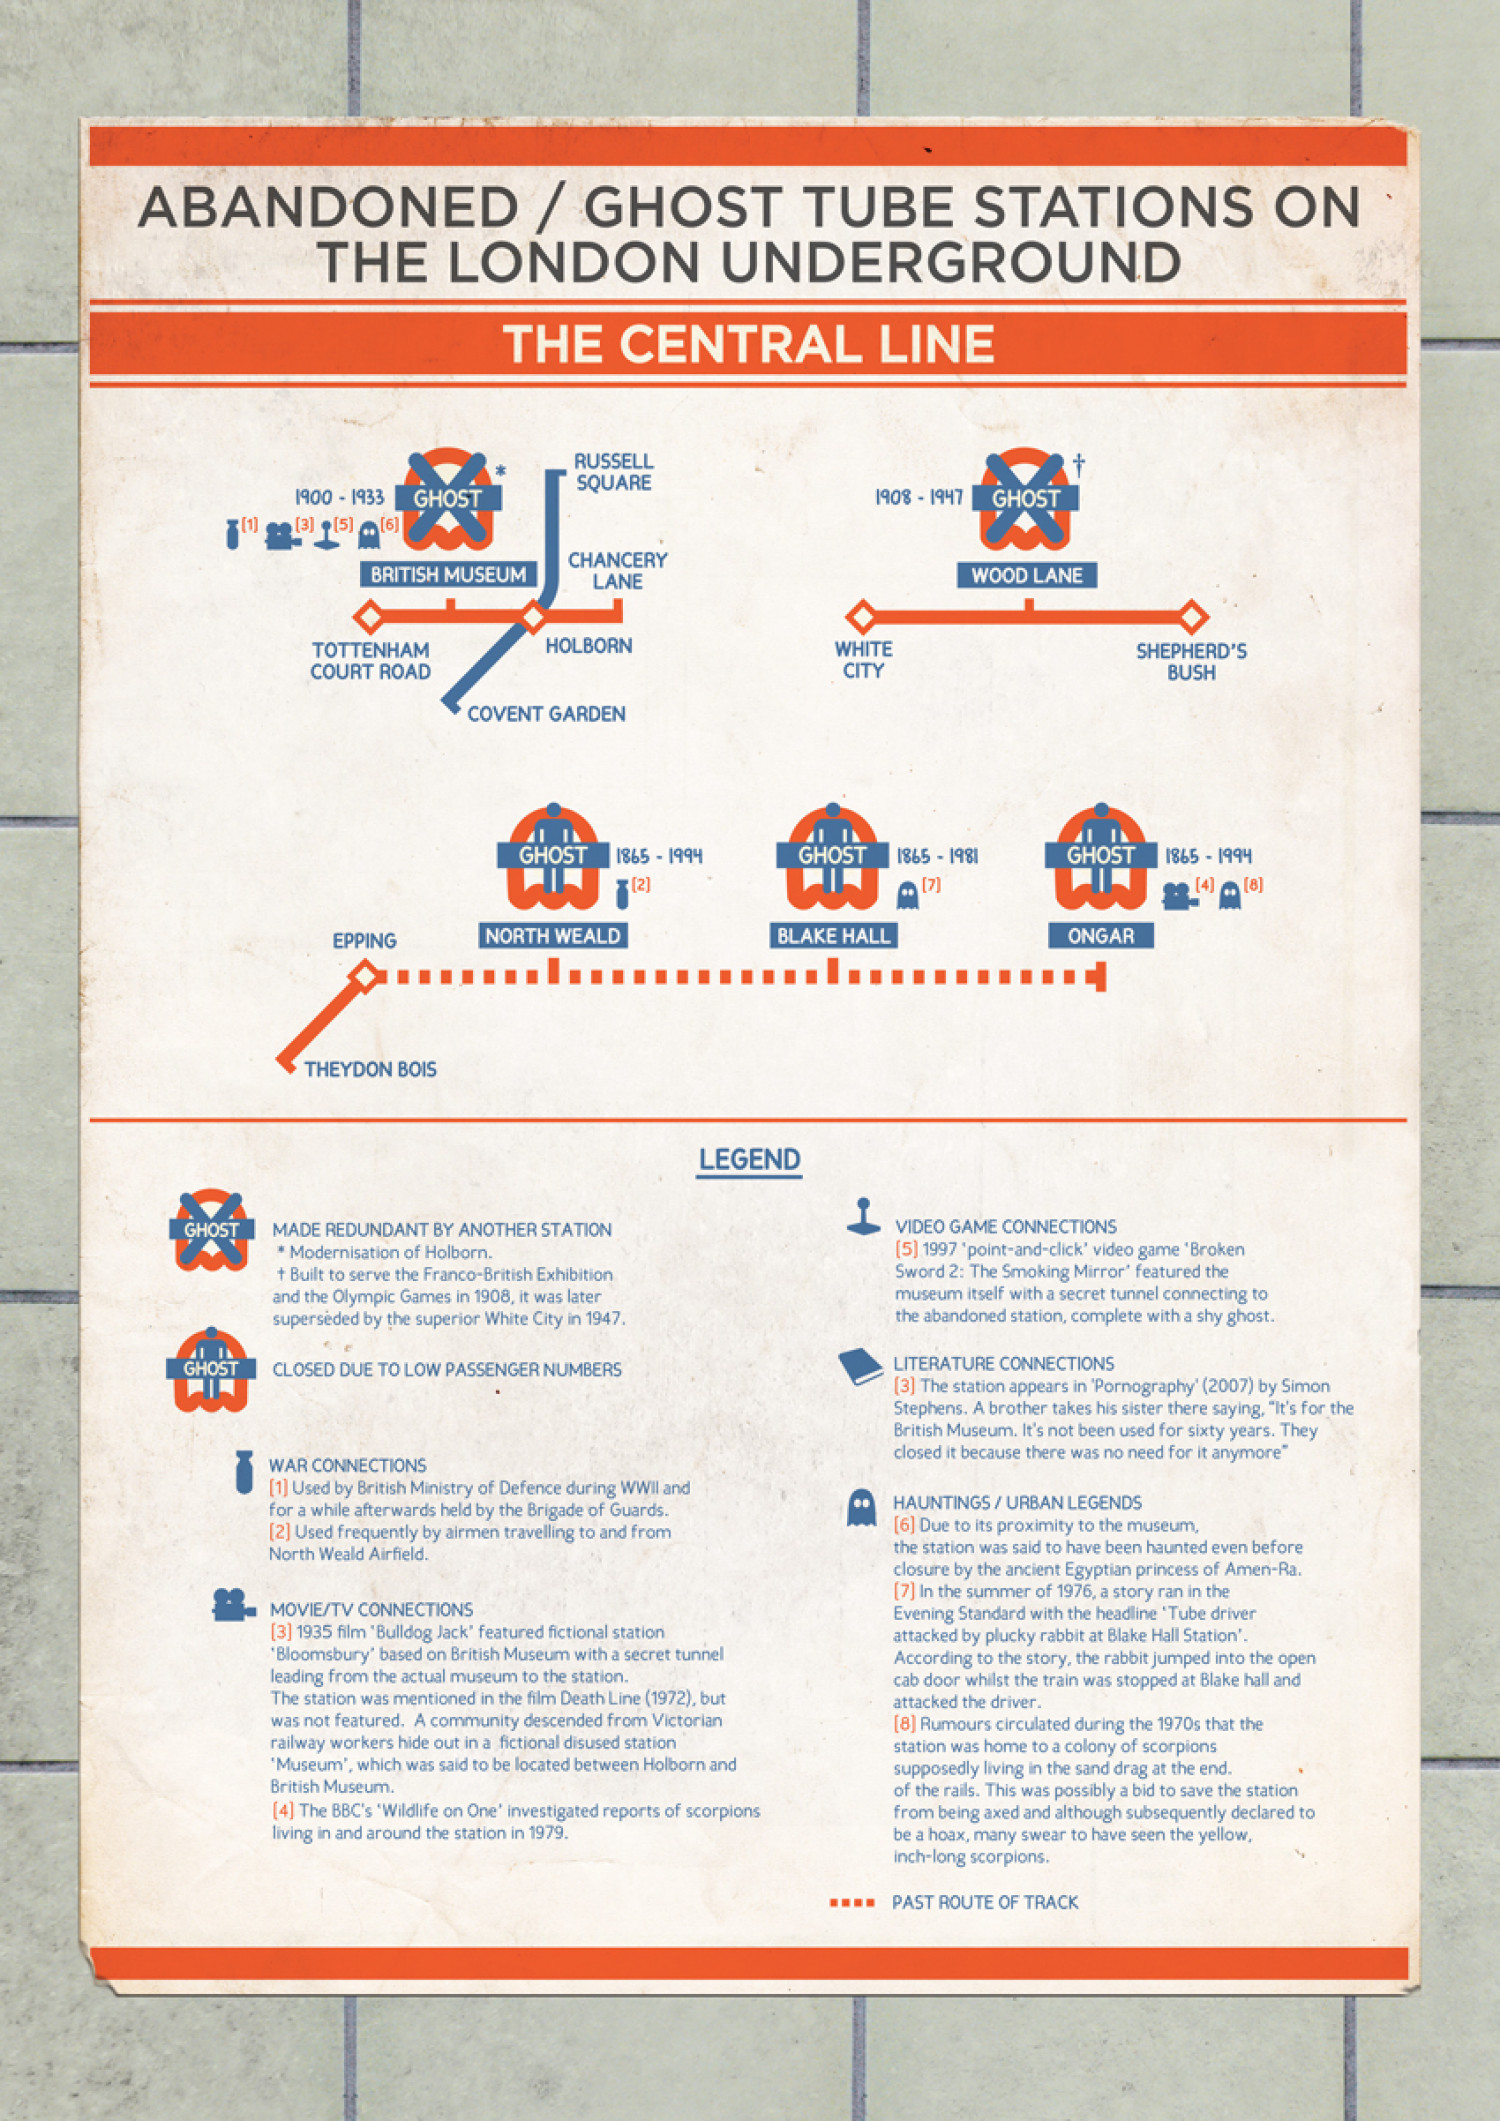 Central Line: Abandoned/Ghost Stations on the London Underground Infographic